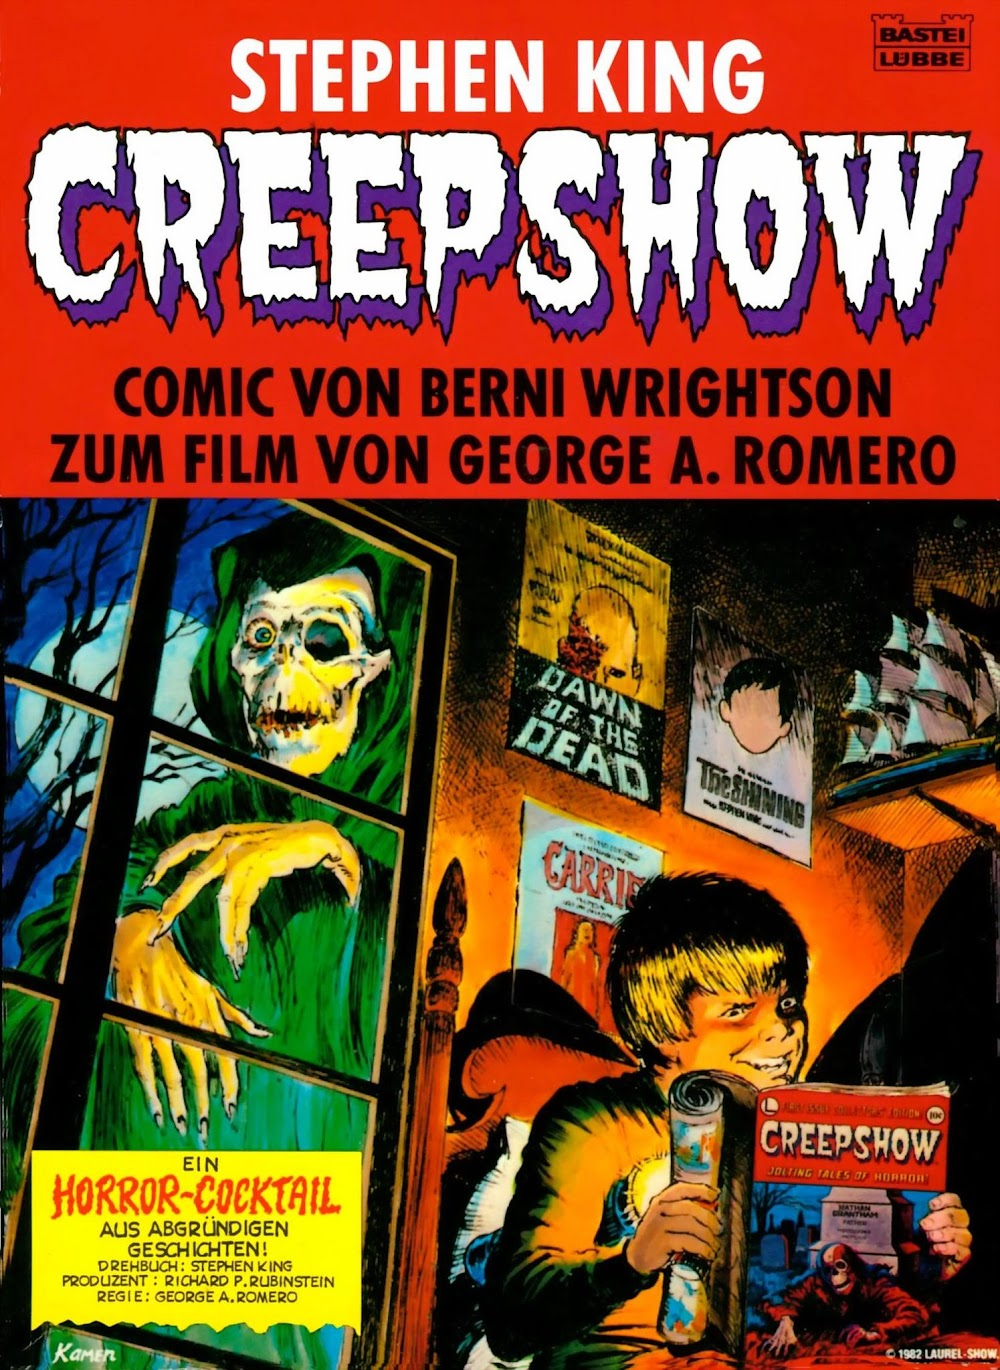 Stephen King: Creepshow (1989)